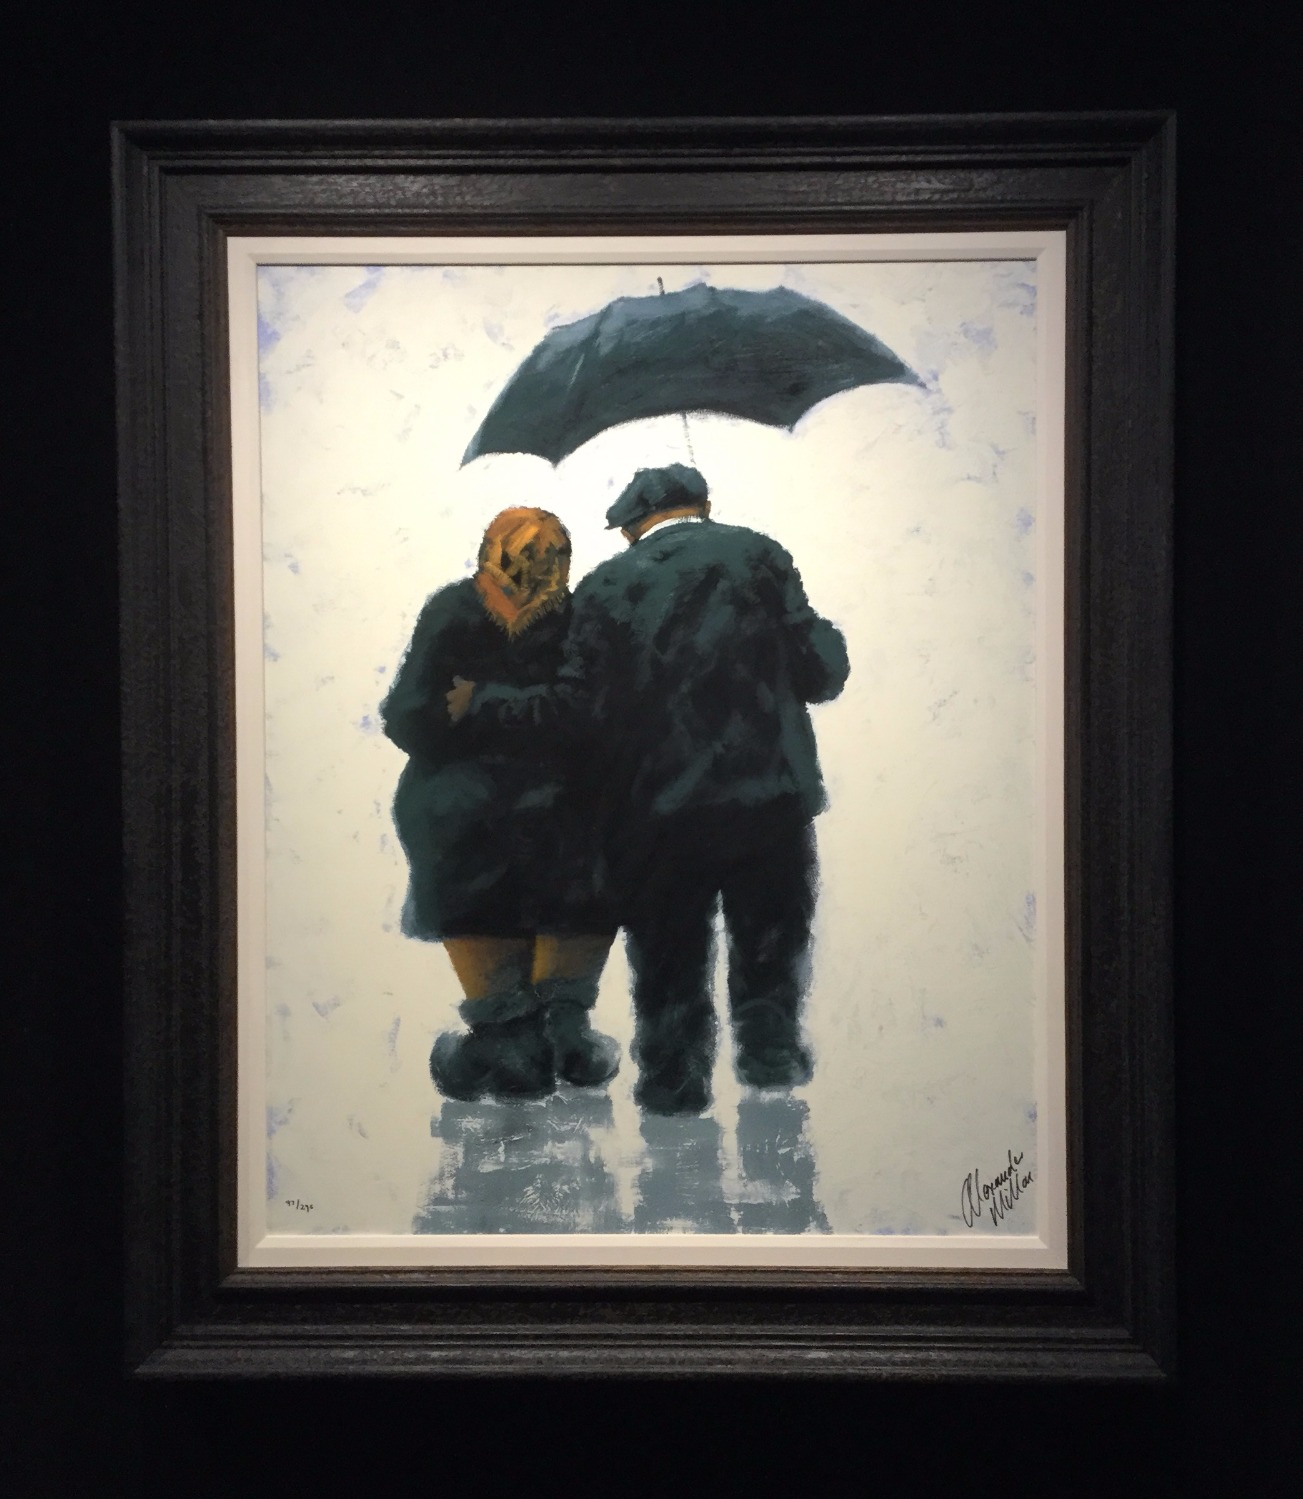 Mam and Dad by Alexander Millar